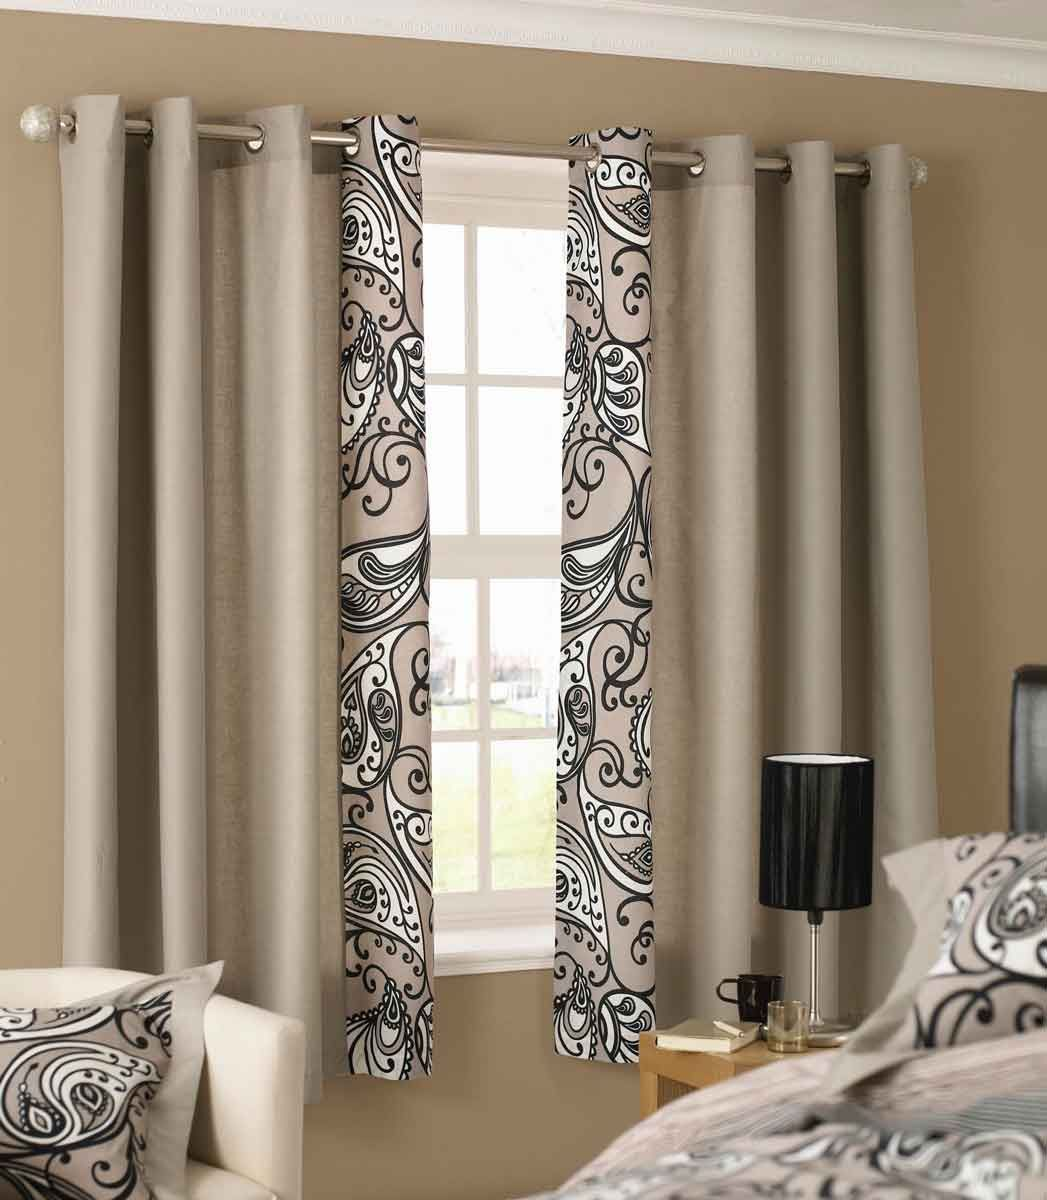 Bedroom Decor Curtains dress your windows in classy and timeless curtains | window